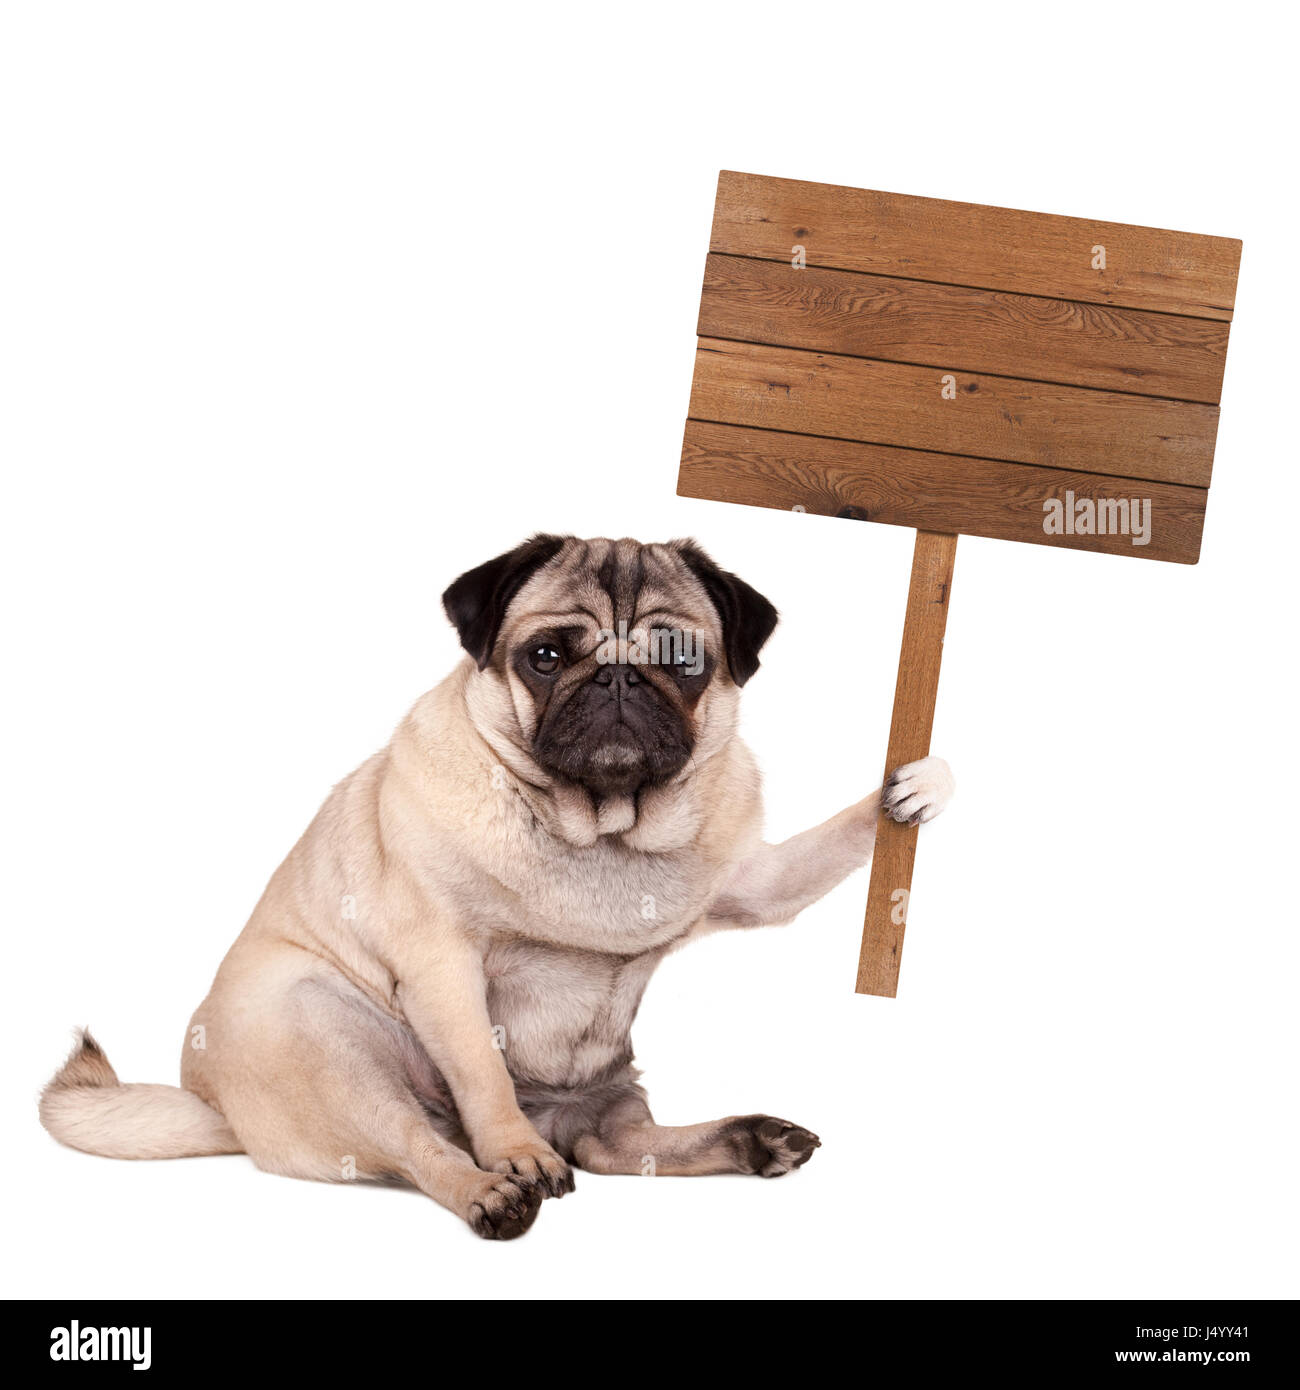 lovely cute pug puppy dog sitting down with blank wooden sign on pole, isolated on white background Stock Photo